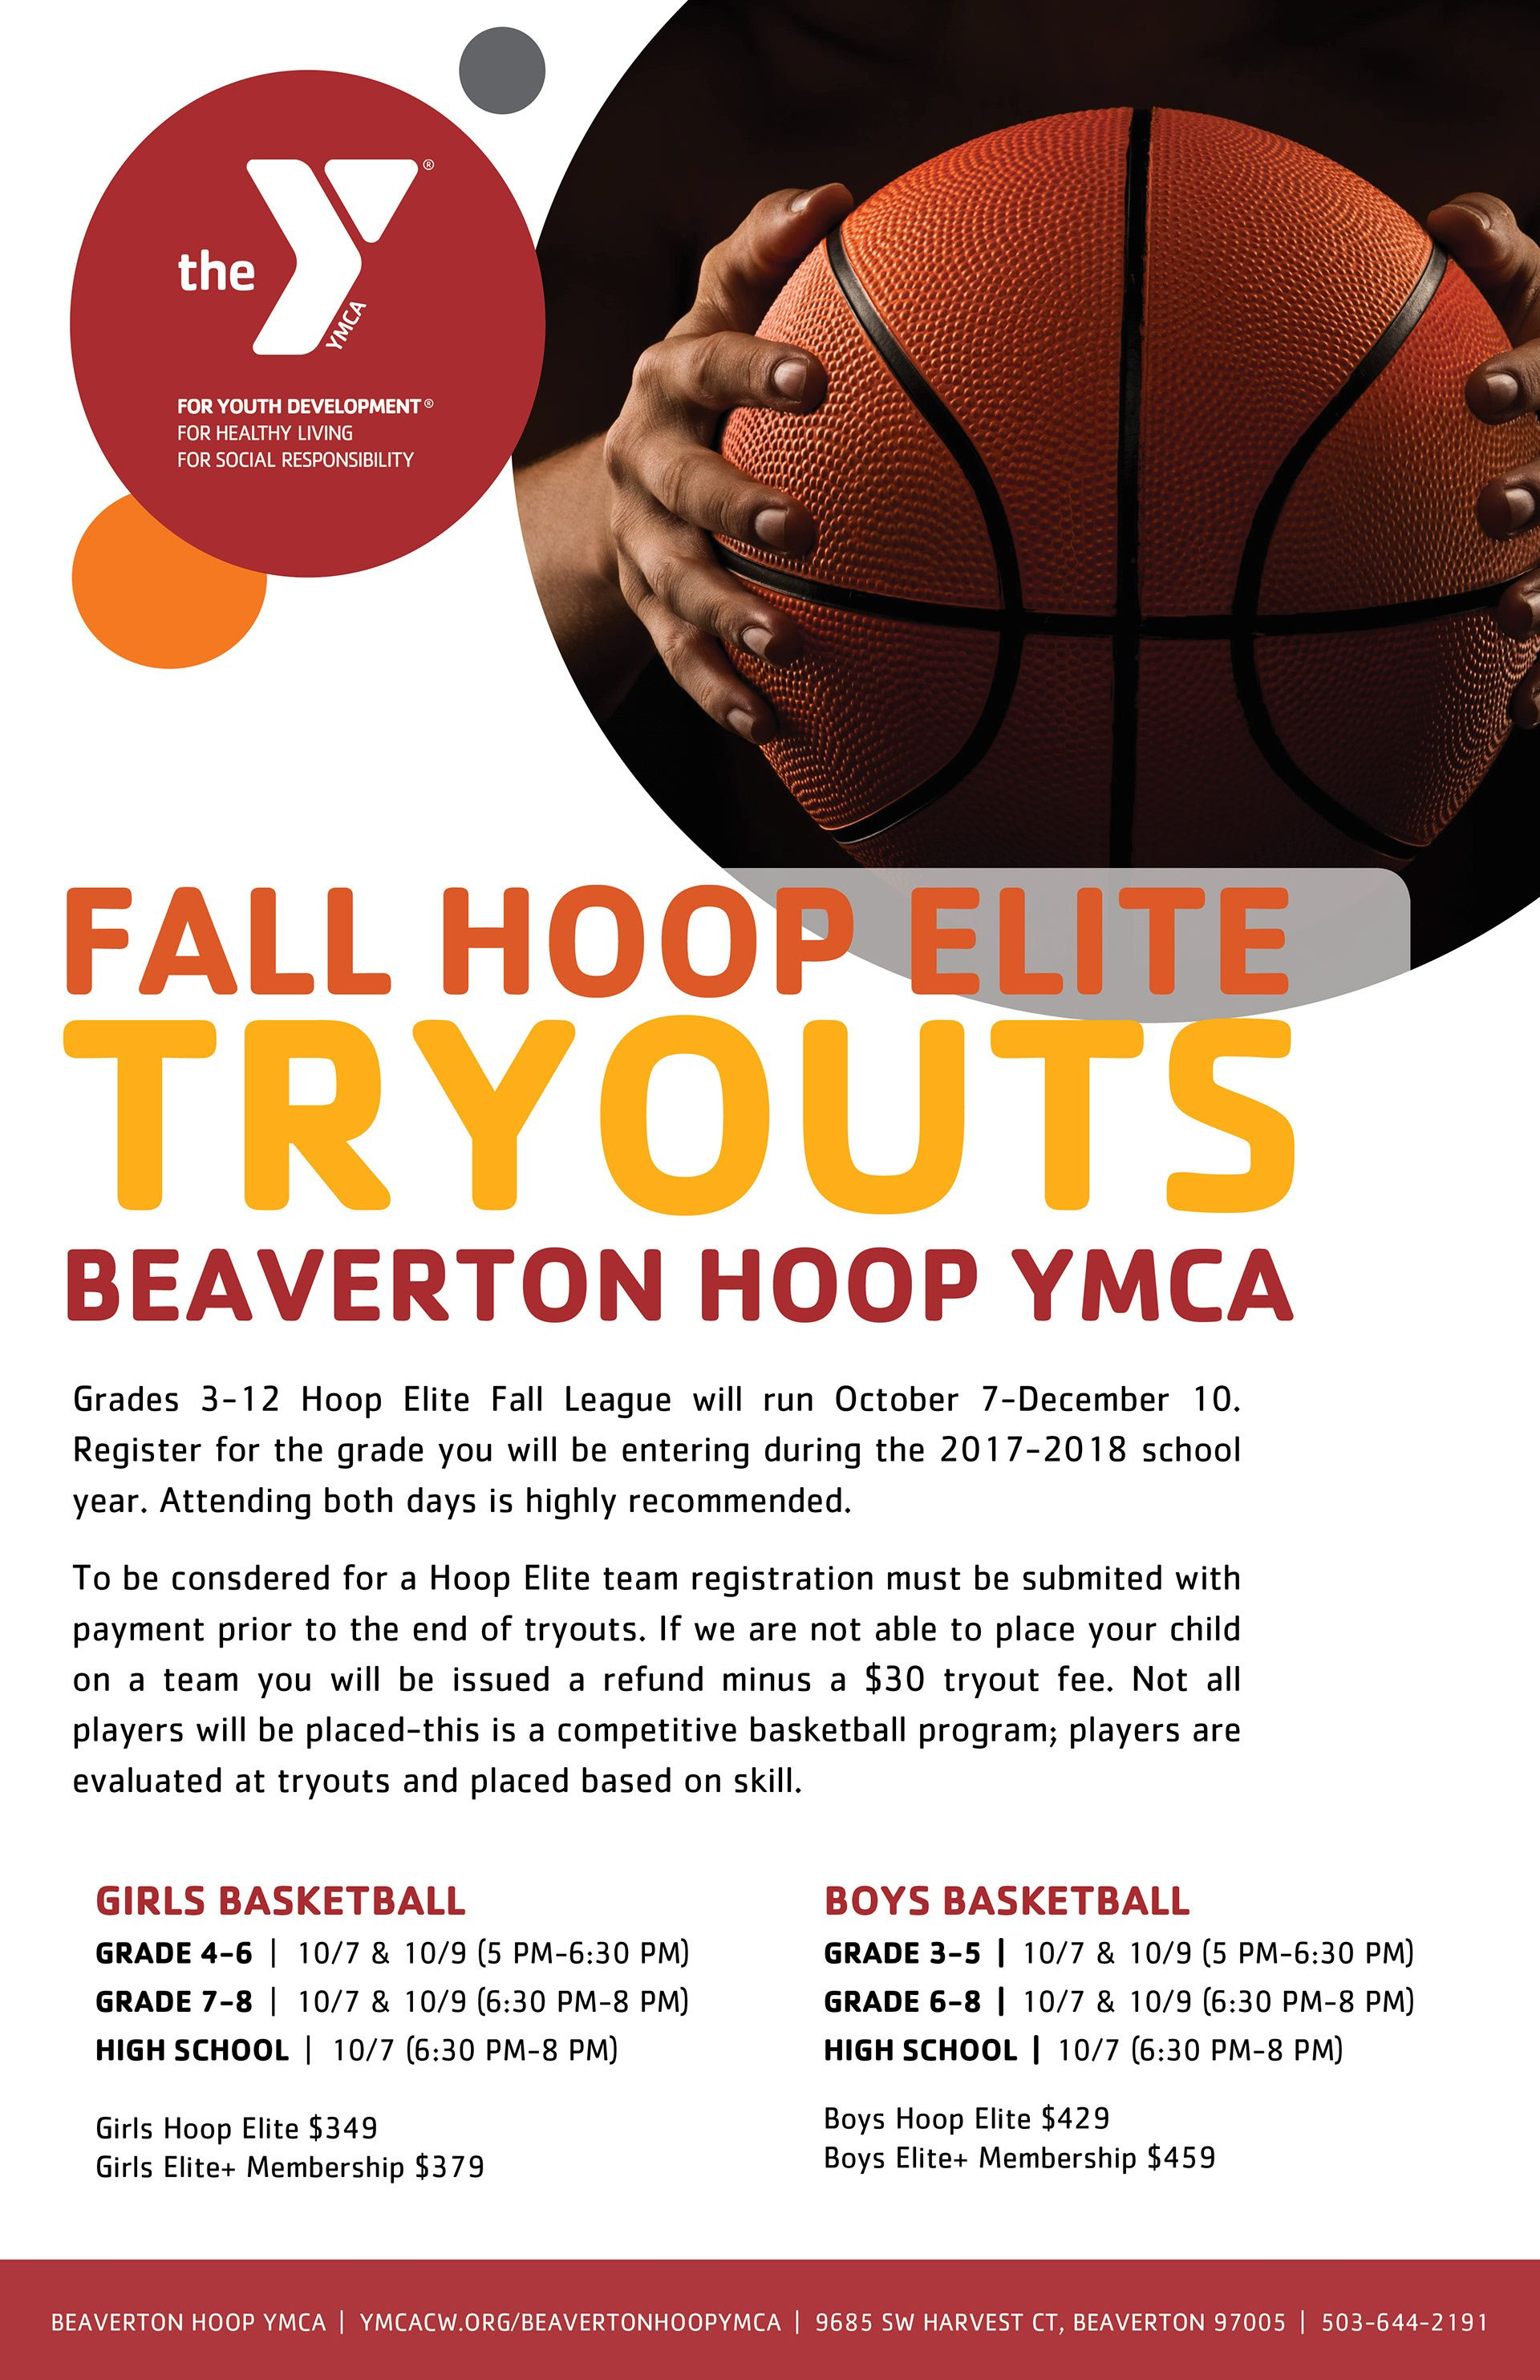 Concept Layout Ymca Basketball Poster For Tryouts Ymca Of Columbia Willamette Beaverton Hoop Ymca Offers Competitive Ba Ymca Basketball Posters Basketball